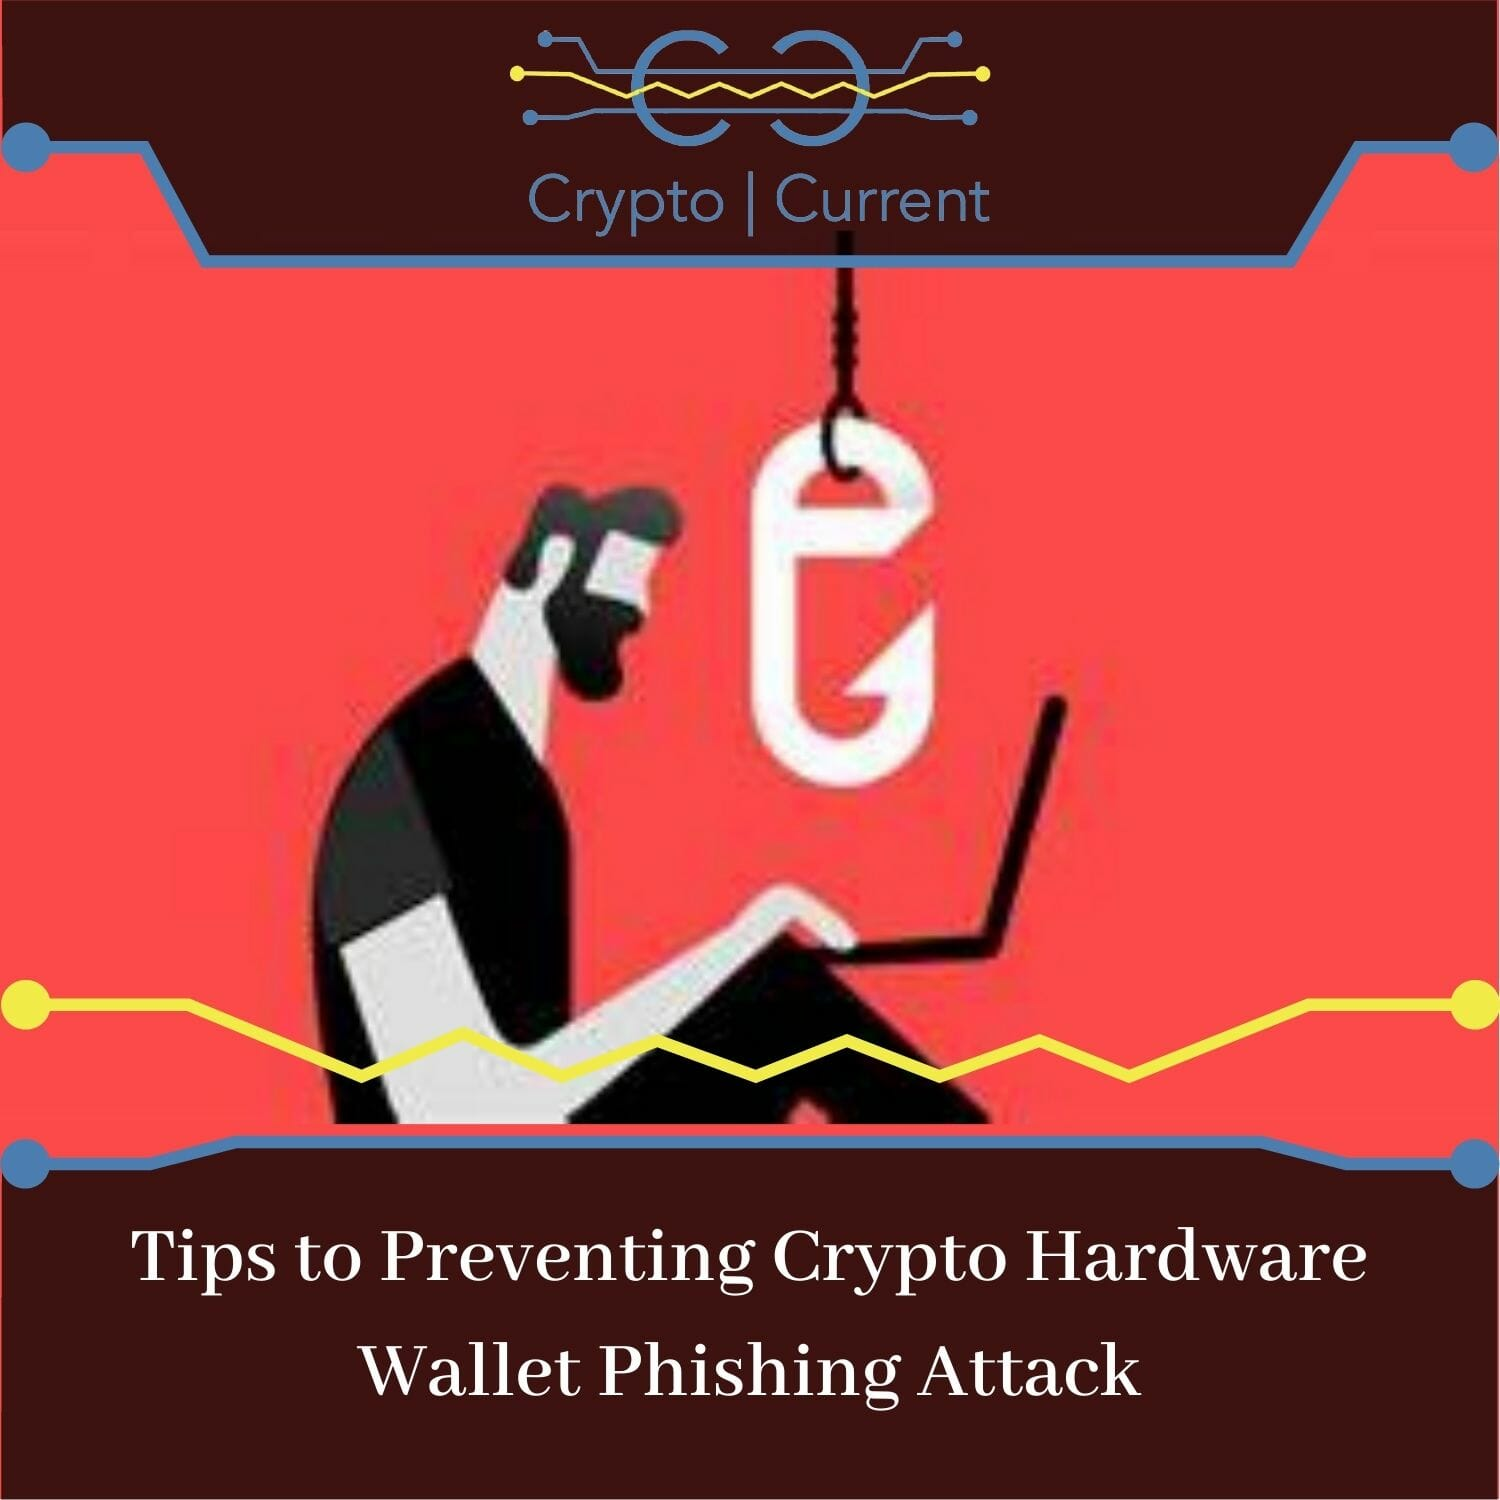 Tips to Preventing Crypto Hardware Wallet Phishing Attack